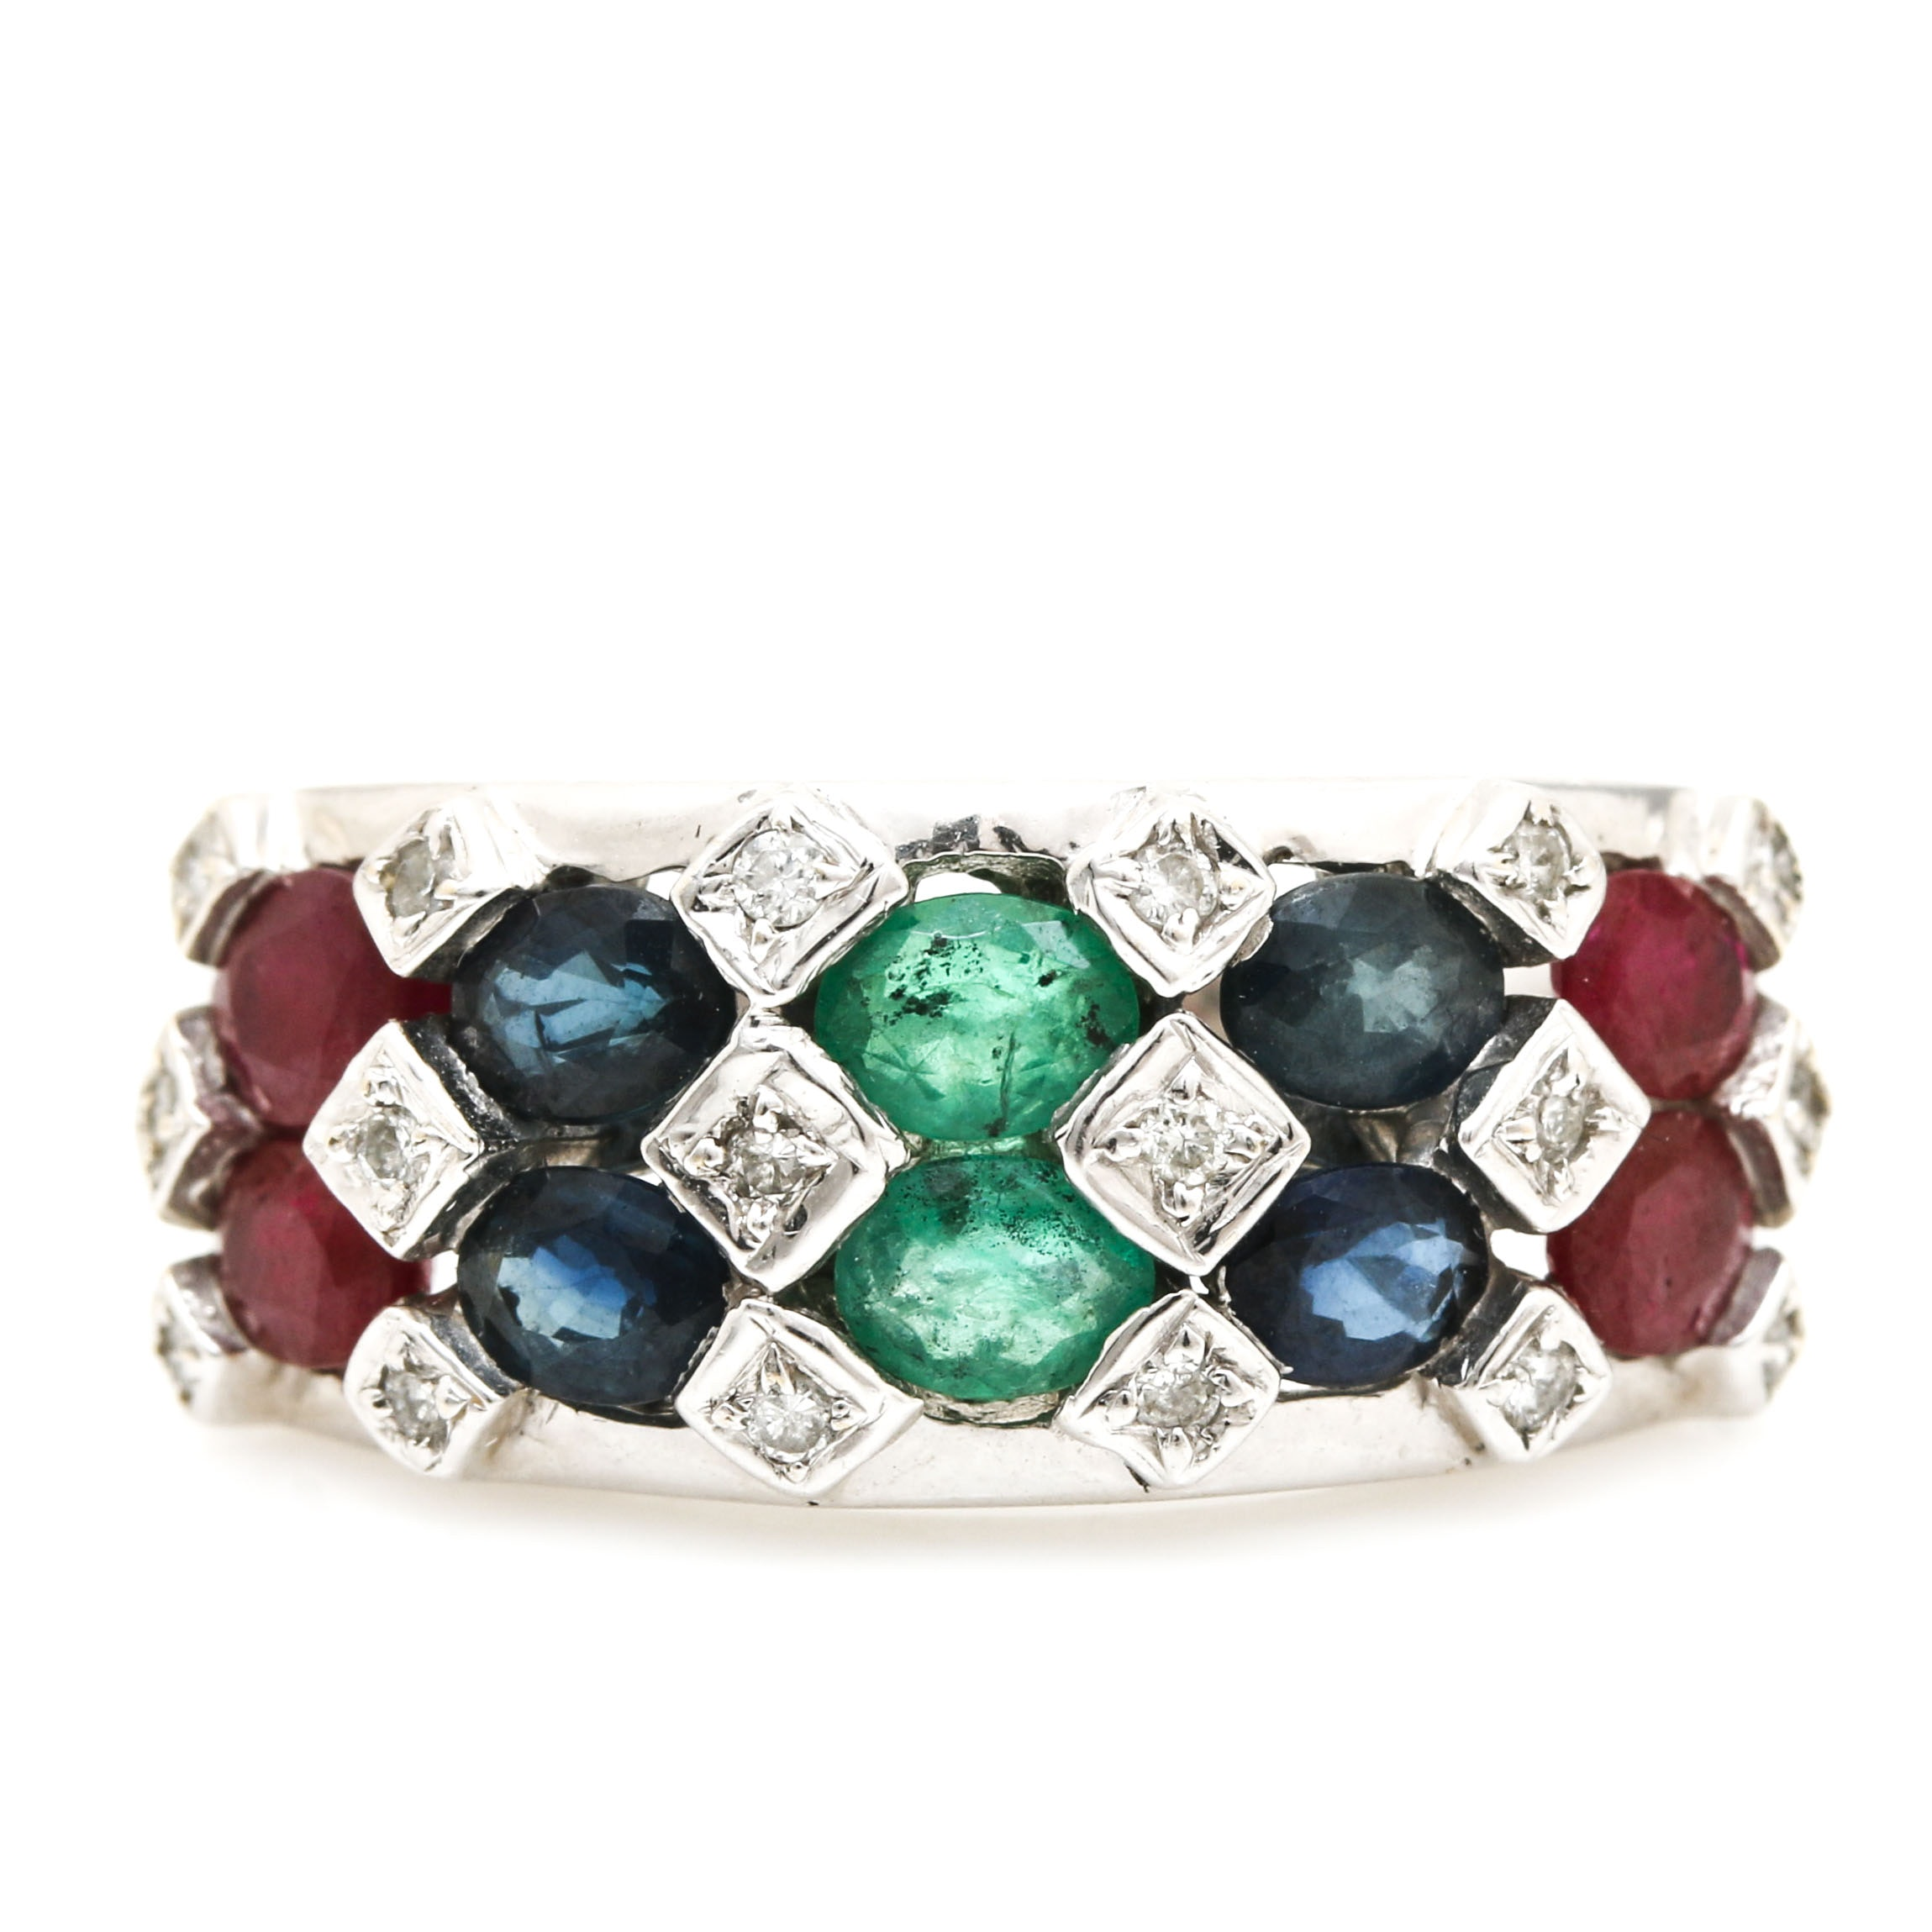 18K White Gold Ruby, Sapphire, Emerald and Diamond Ring